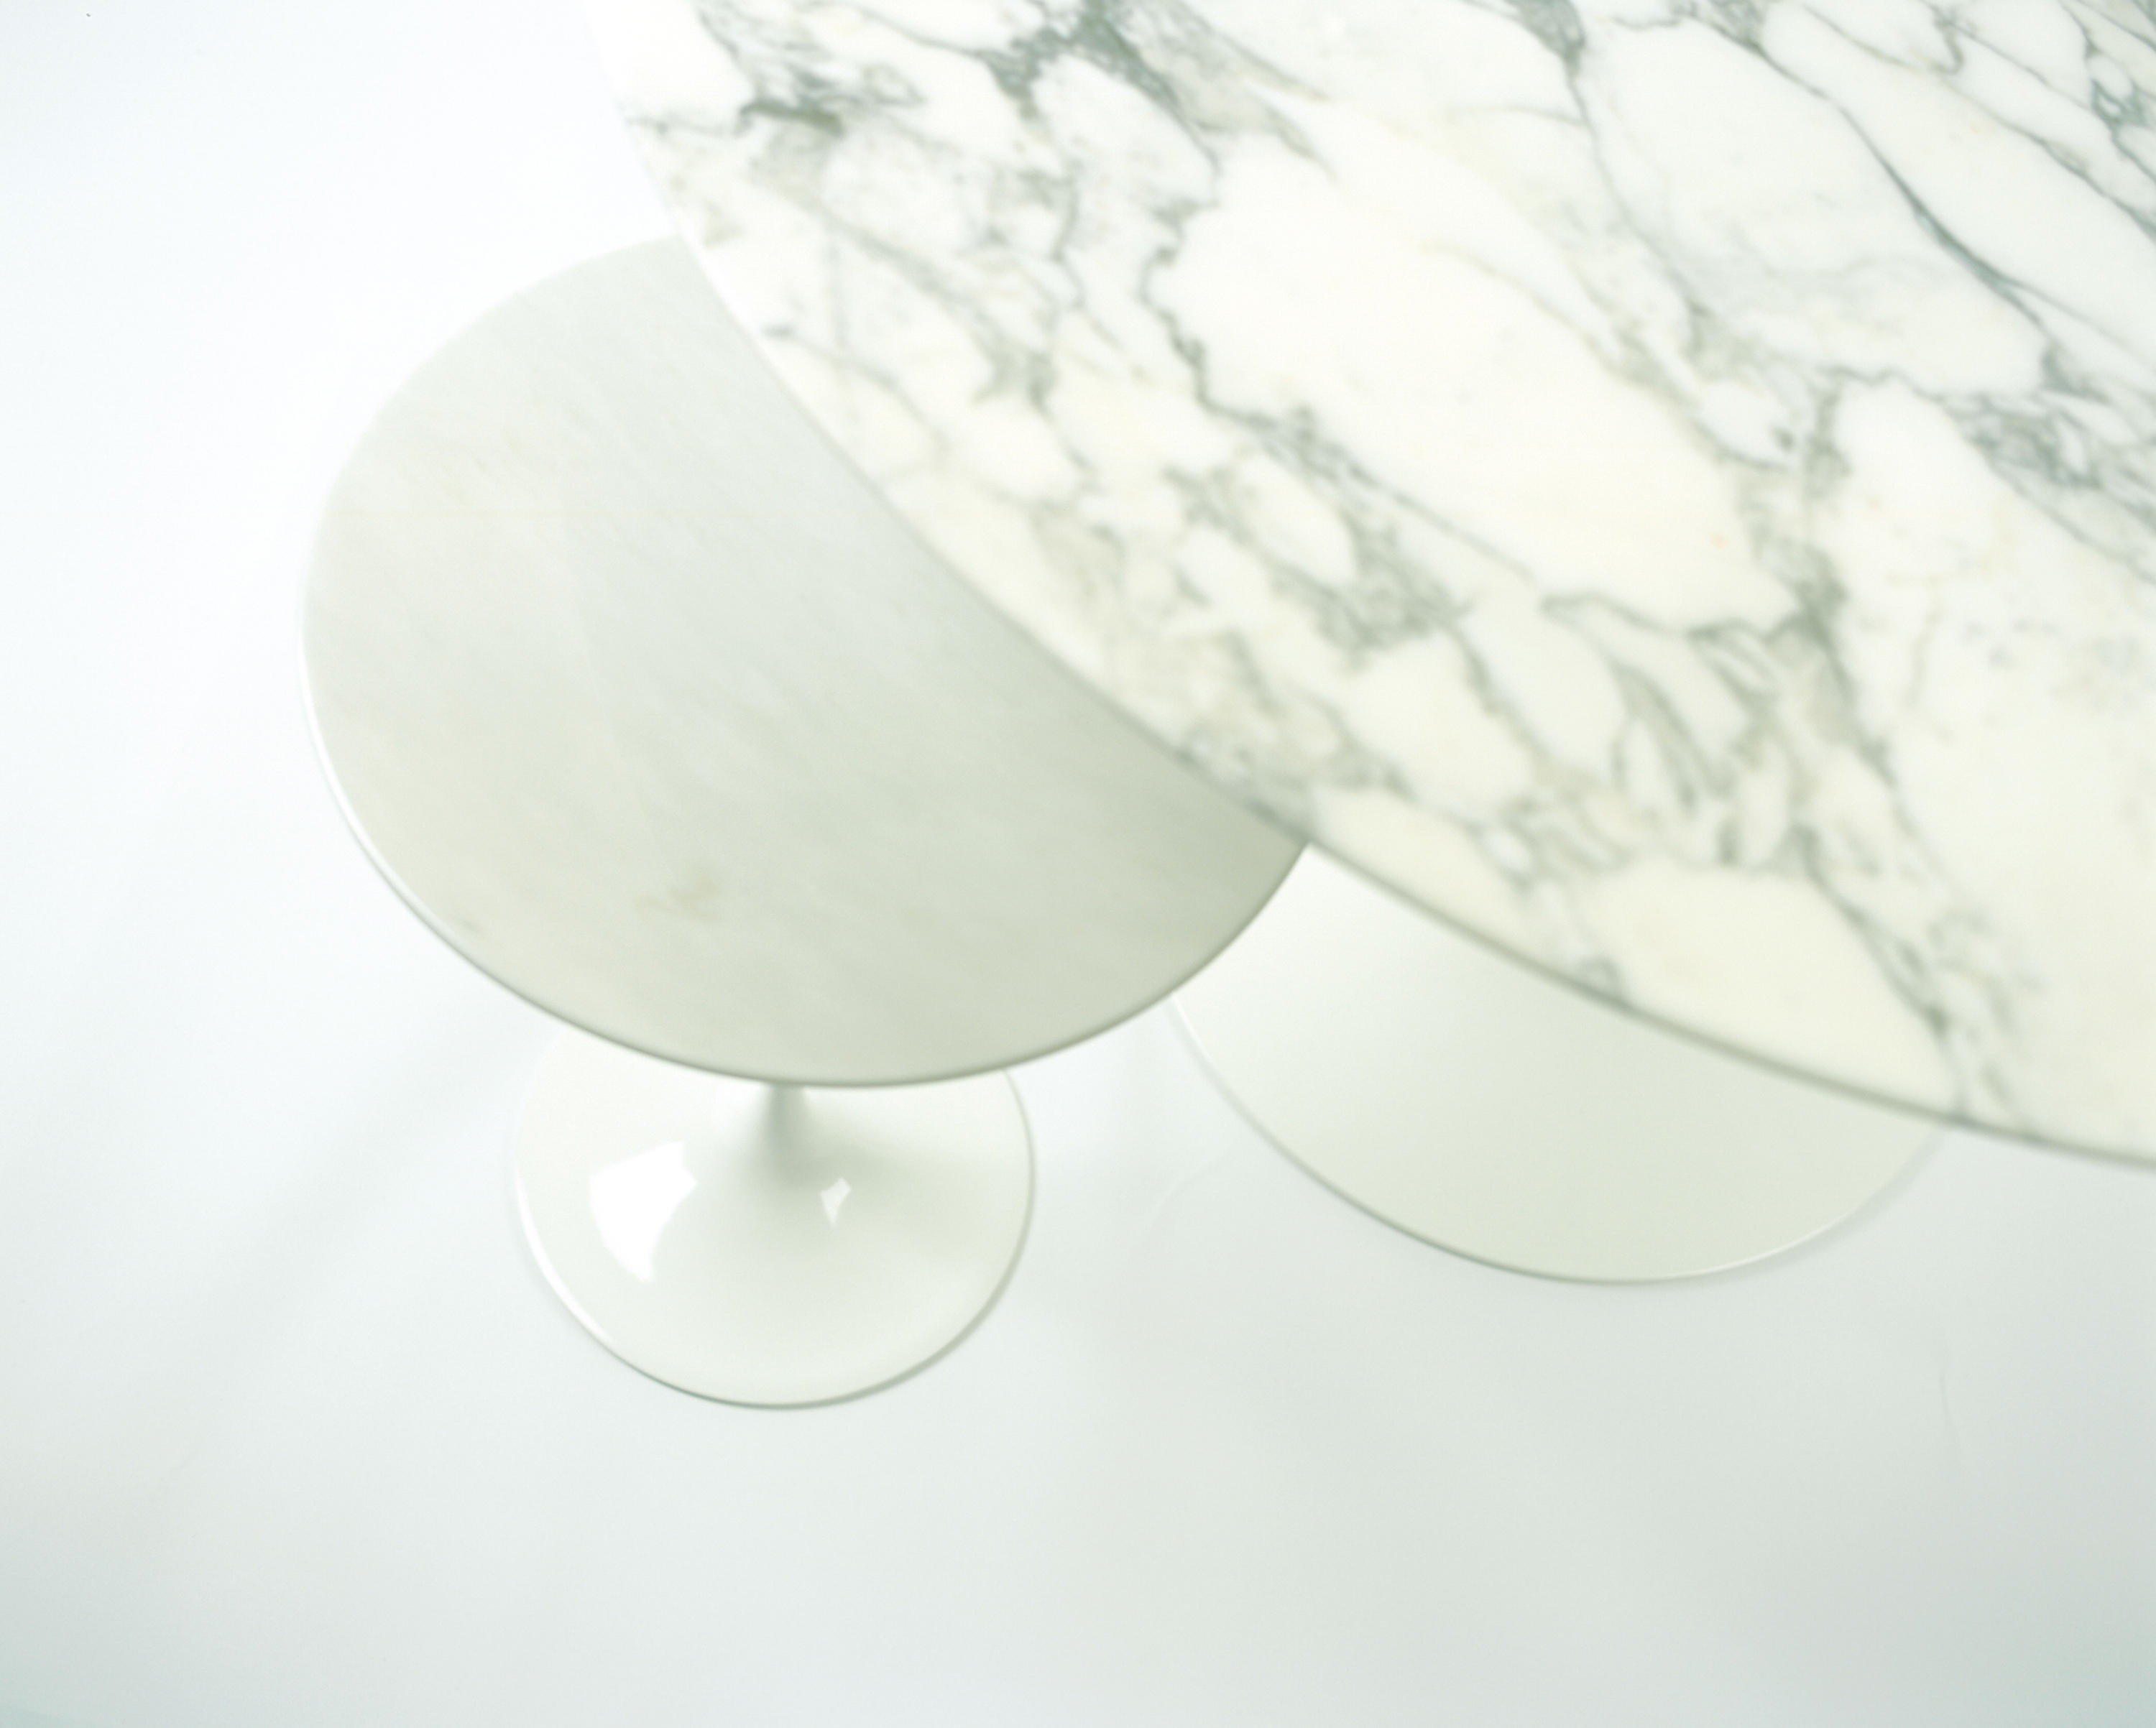 ambient images saarinen tulip low table by knoll